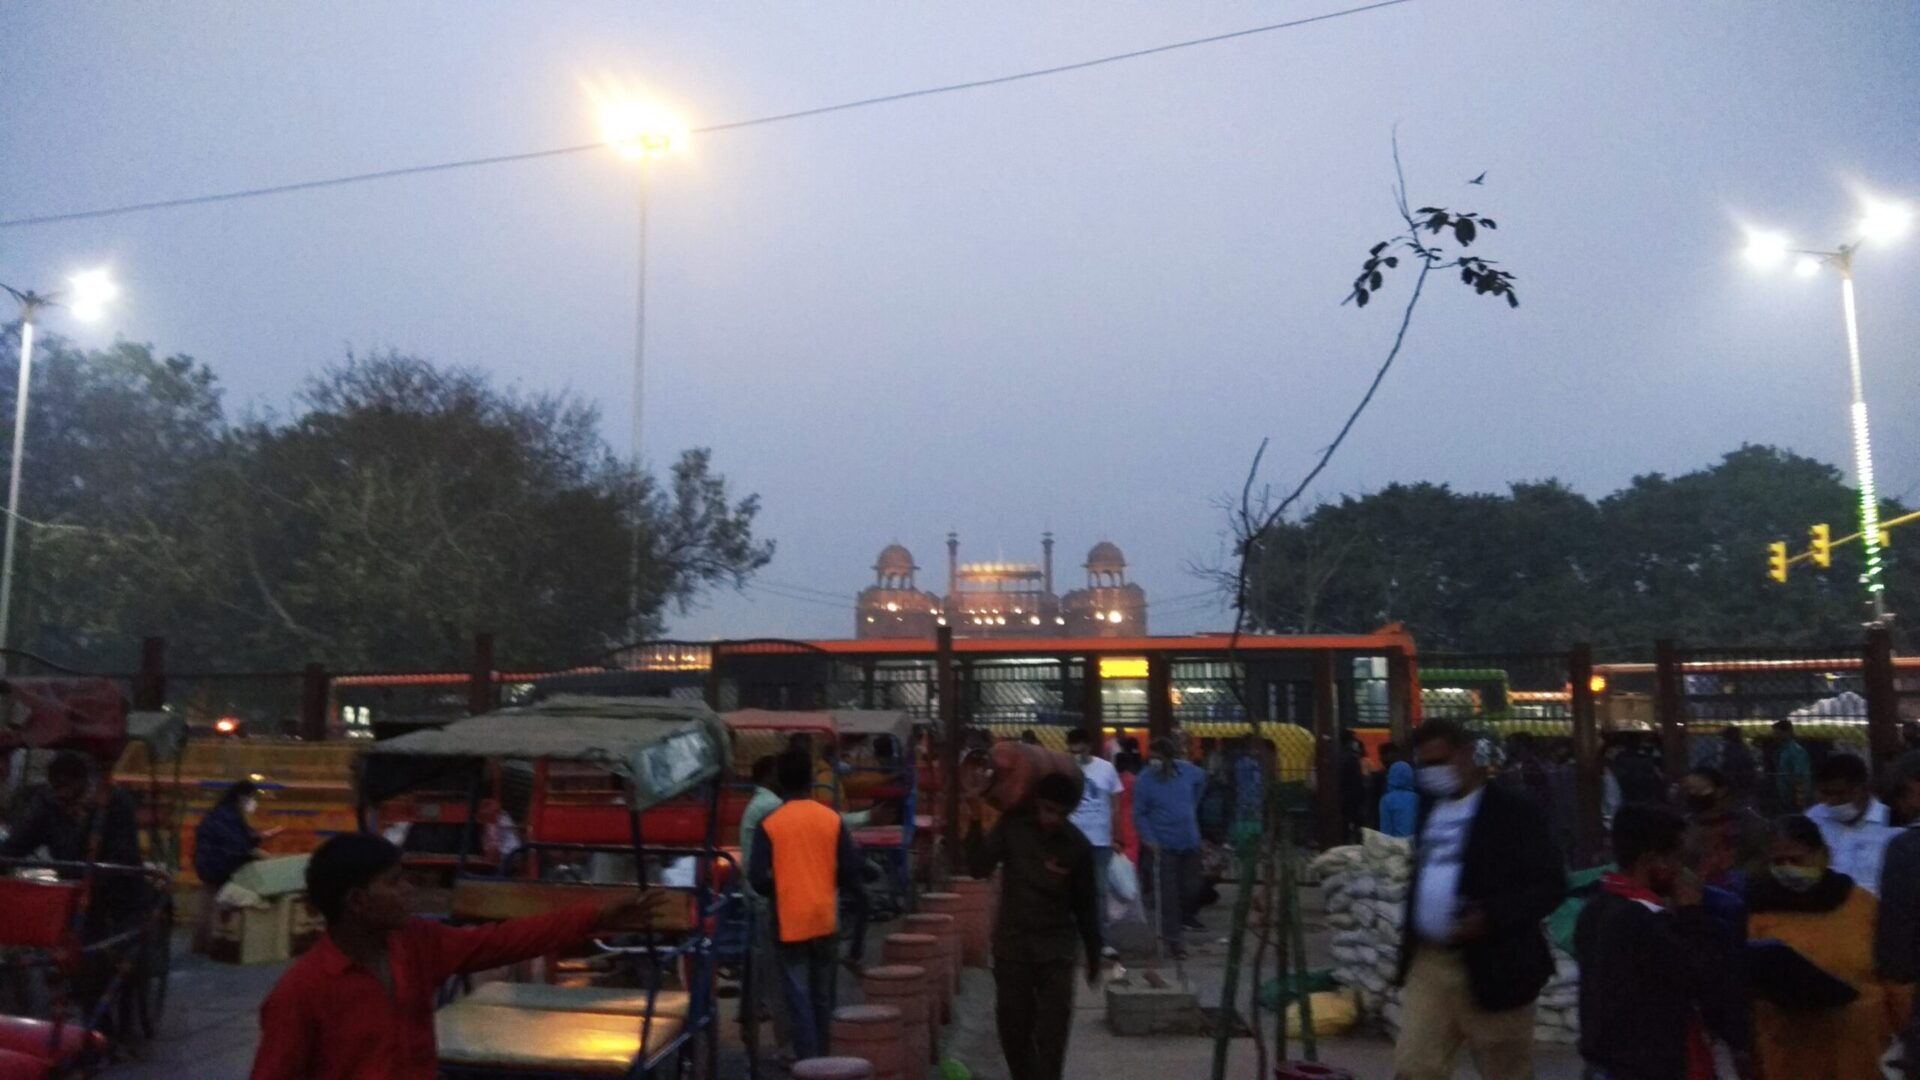 Red Fort at Night near Chandni Chowk Market